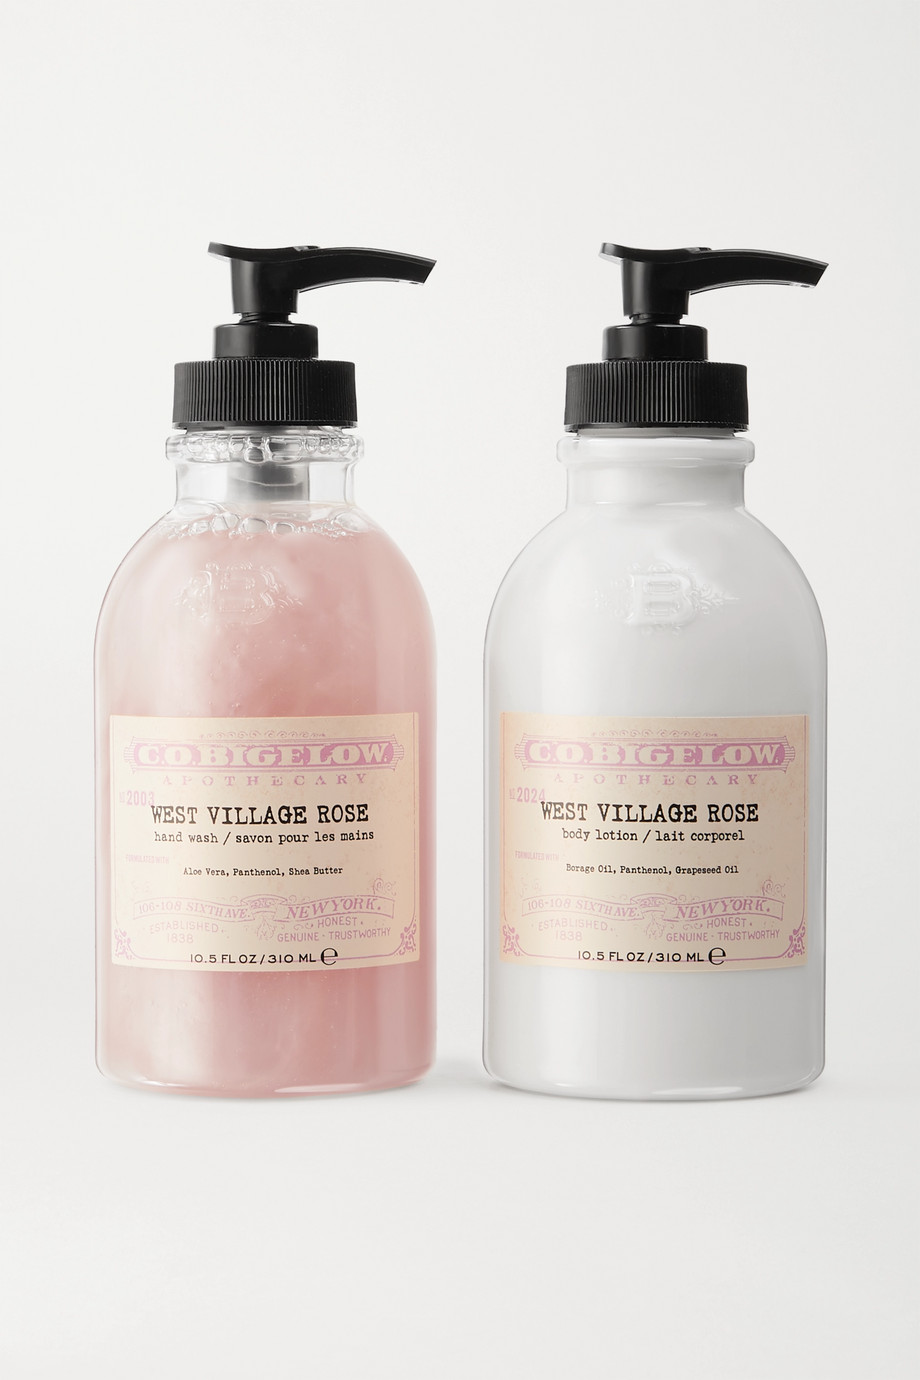 C.O. BIGELOW Iconic Collection Hand Wash and Body Lotion Set - West Village Rose